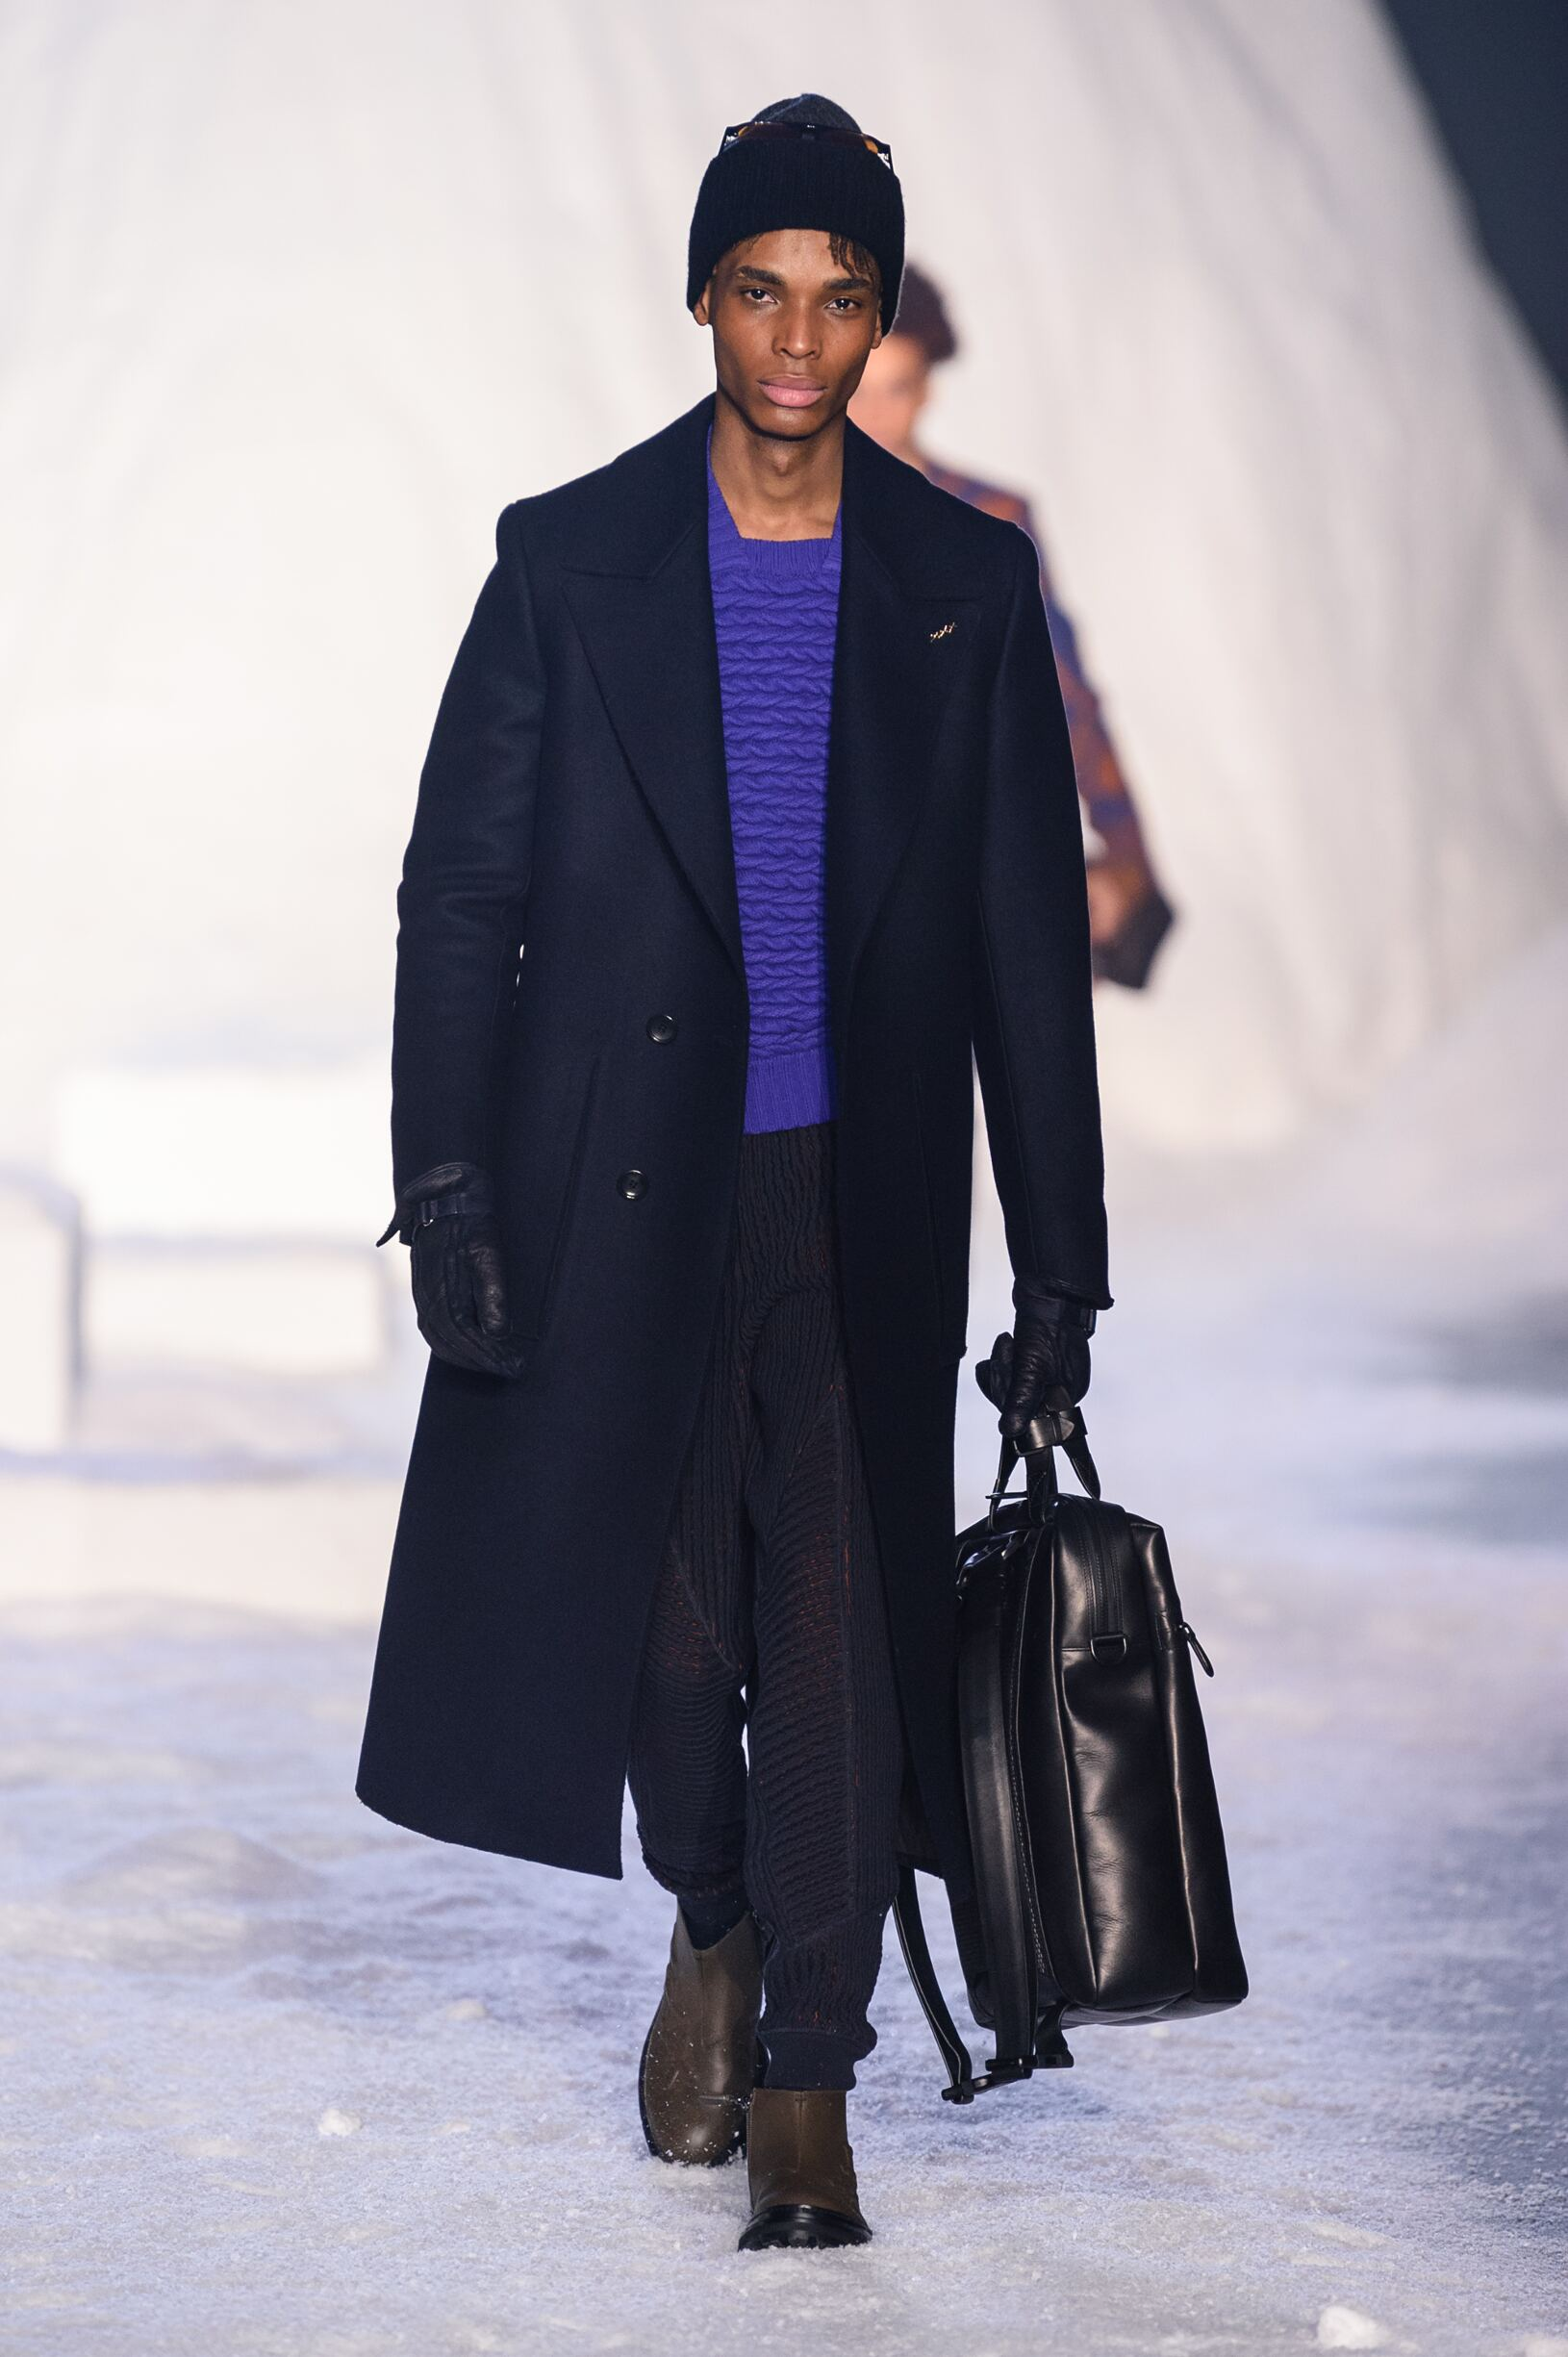 Fall Fashion Man Trends 2018 Ermenegildo Zegna Couture